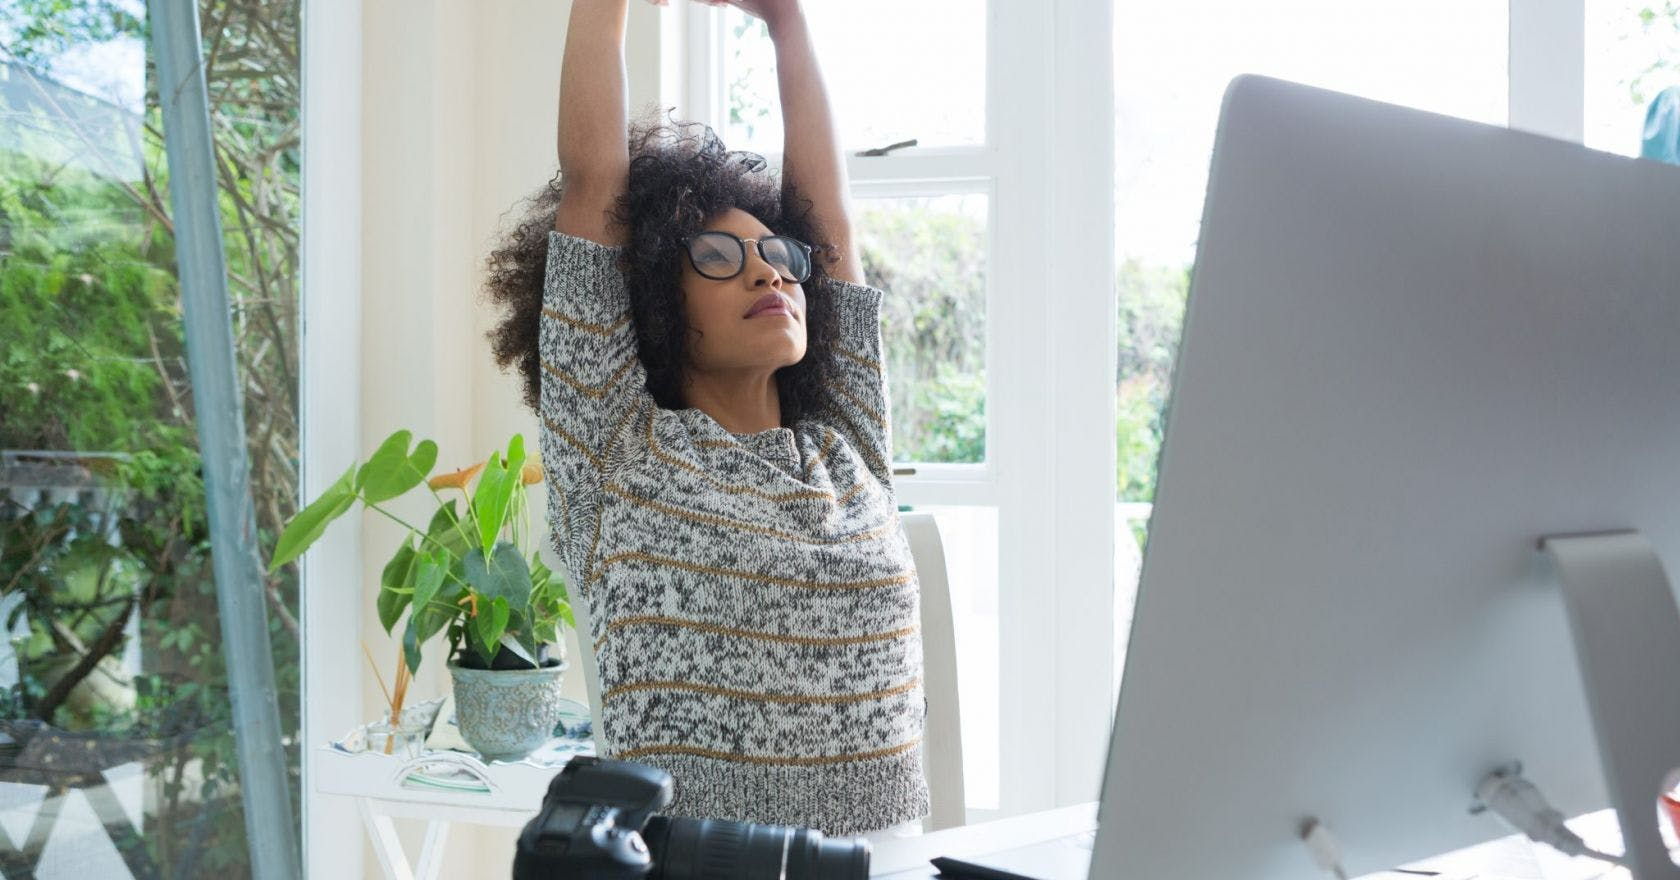 Neck and shoulders stretches for when you've been staring at a screen all day